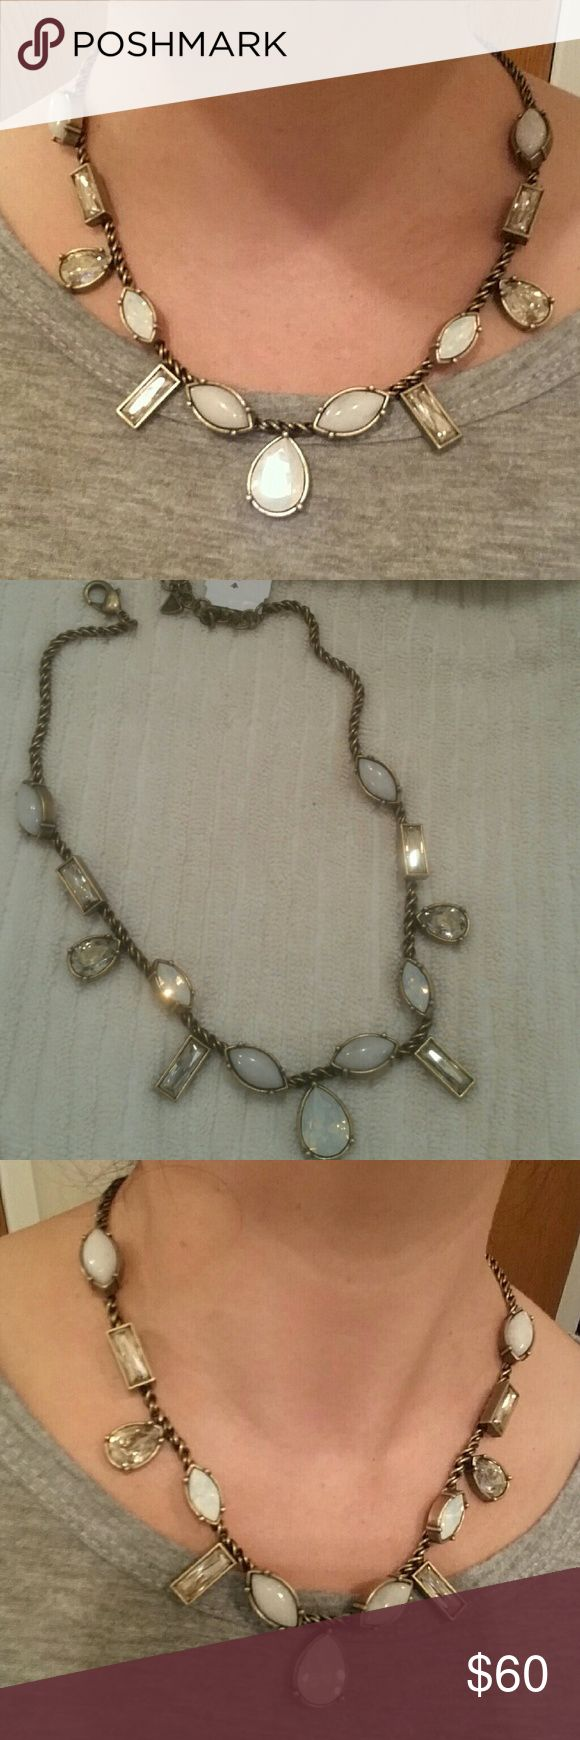 SILPADA STUNNER CRYSTAL CLEAR!! Somebody call 911!! This piece is on FIRE. These crytals and quartz details are on fire. Turn left turn right this neckalace will catch the light at each and every turn. THIS PIECE IS WORTHY OF EVERYTHING!!! Silpada Jewelry Necklaces